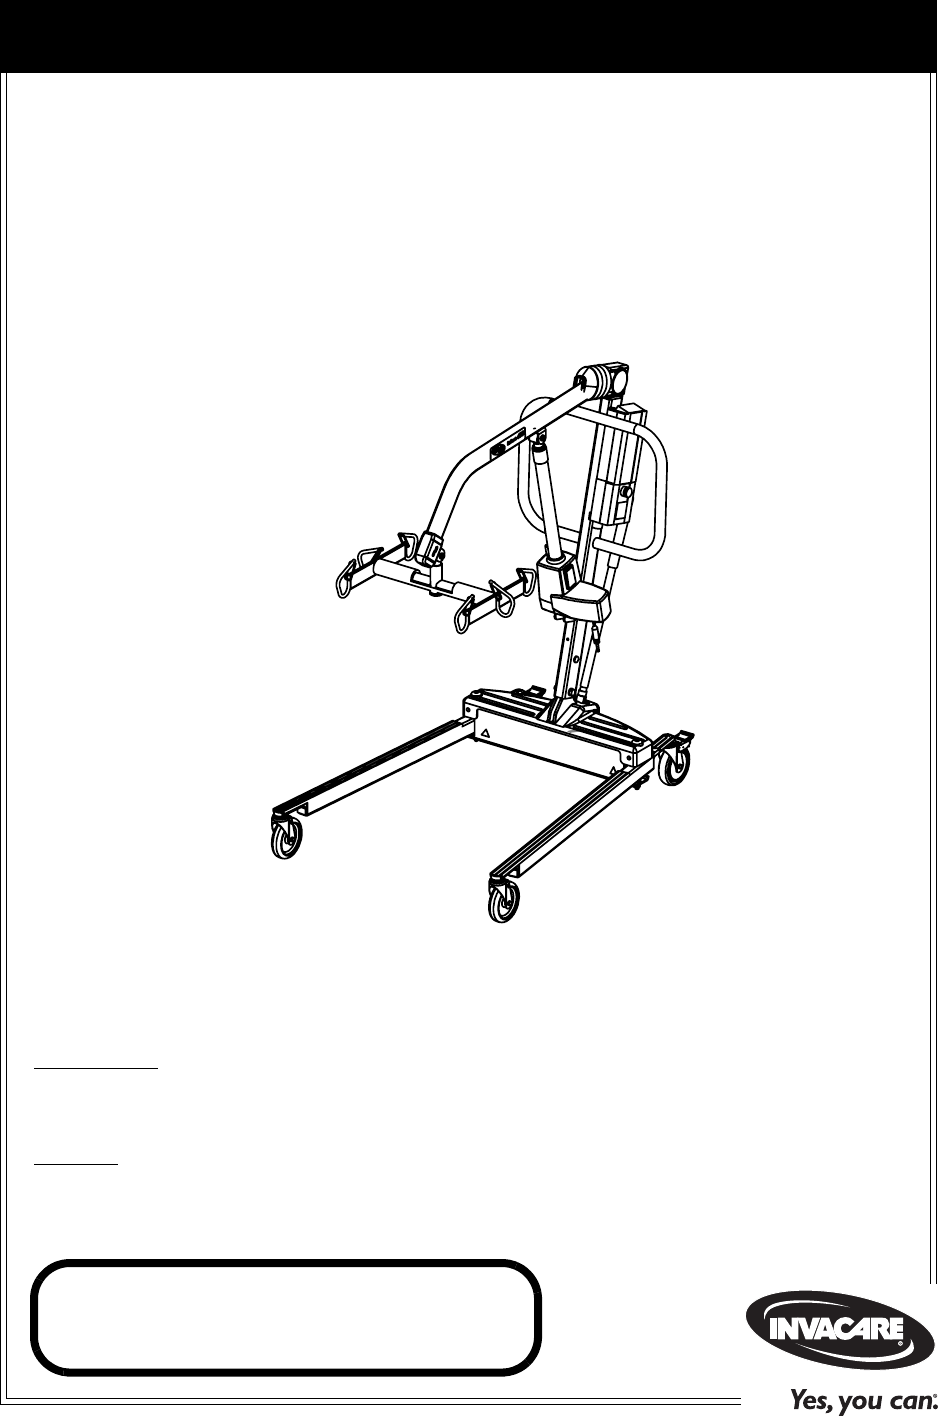 Invacare Fitness Equipment RPA600-1E User Guide